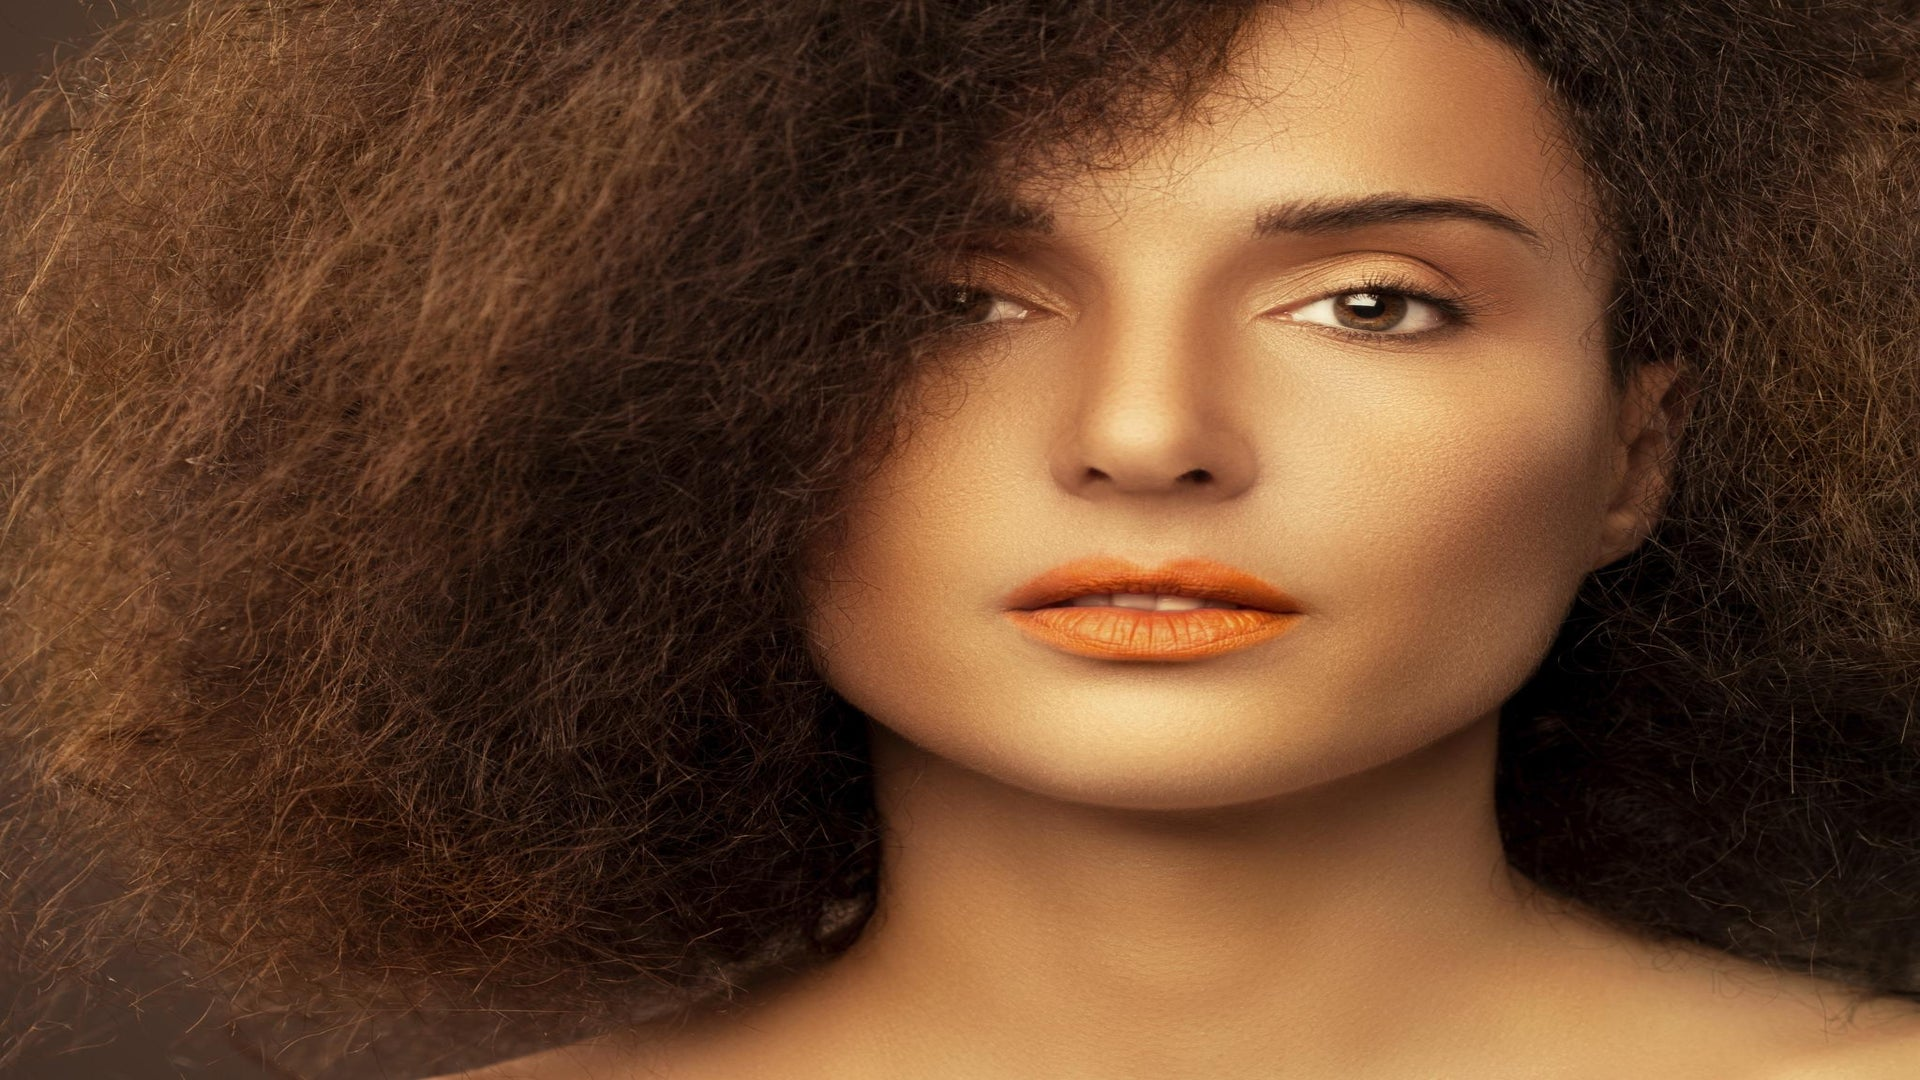 ESSENCE Poll: Do You Think Non-Black Women Wearing Afros is Cultural Appropriation or Appreciation?